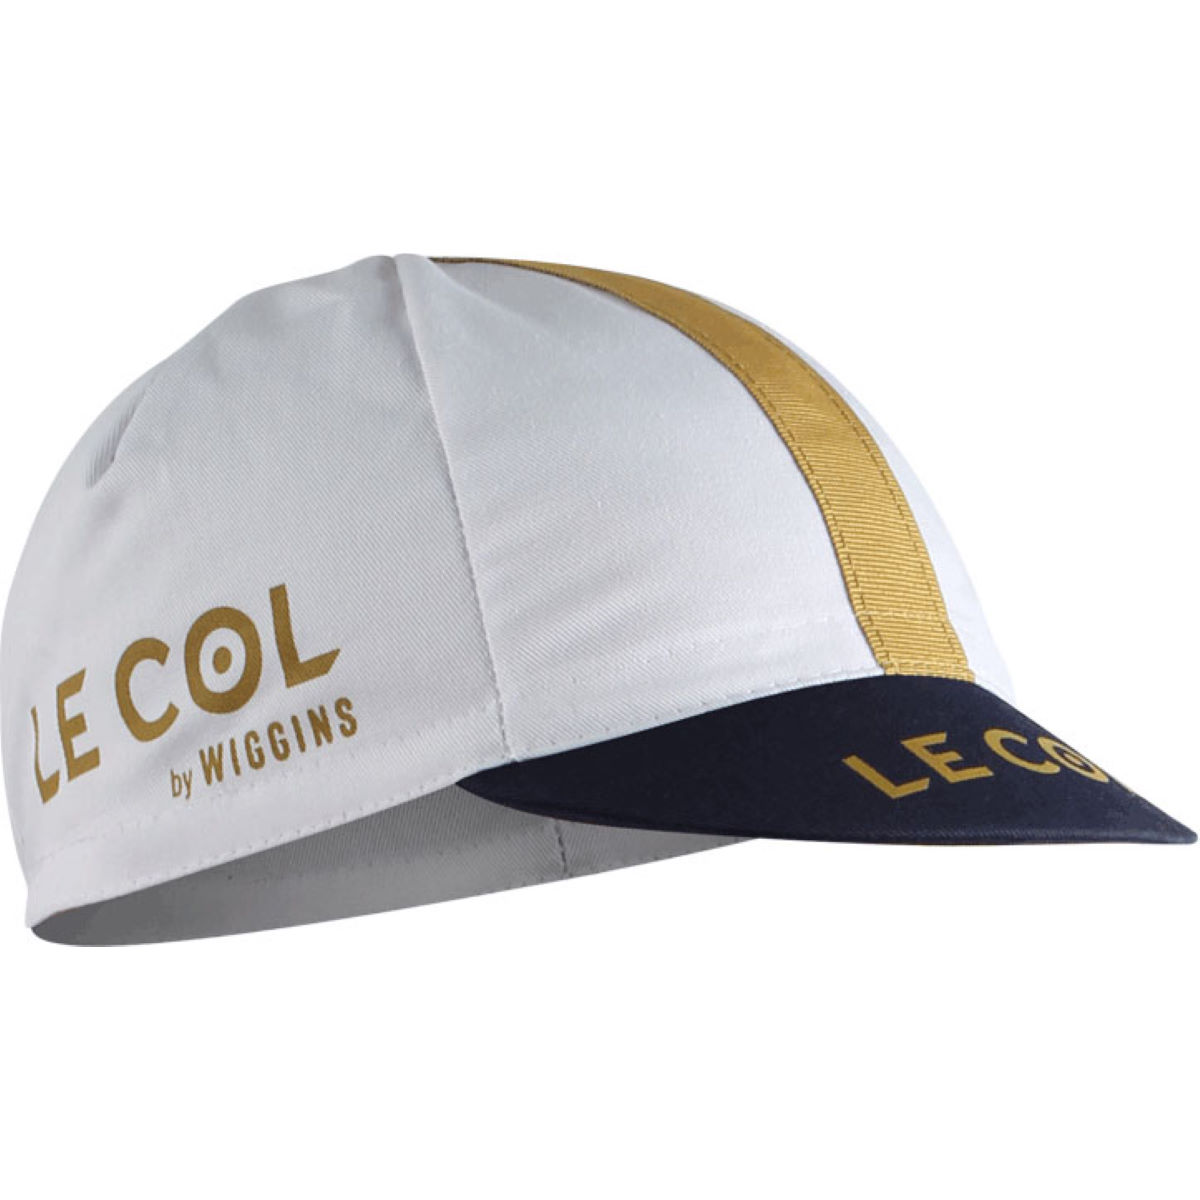 Le Col By Wiggins Pro Cycling Cap - One Size White  Caps